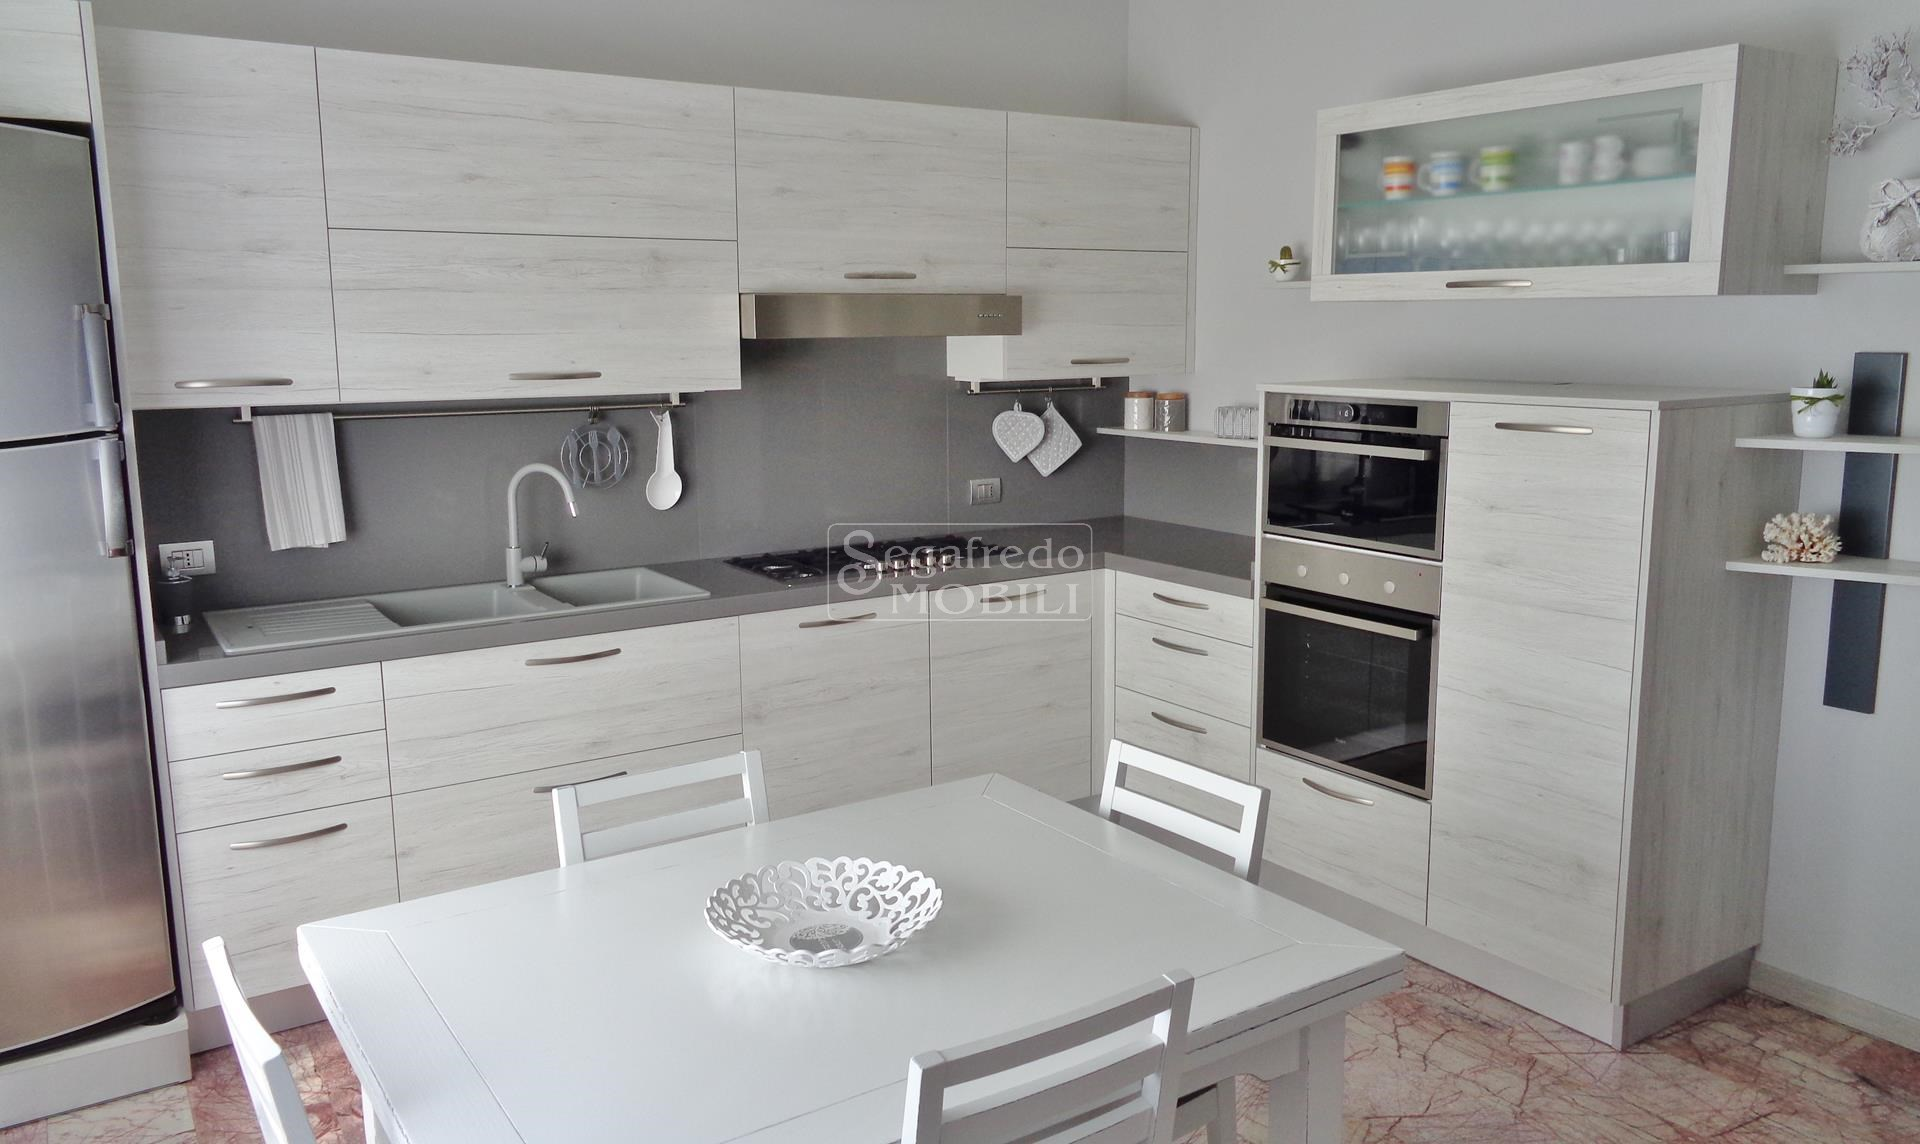 Beautiful Cucine Moderne Rovere Sbiancato Ideas - Comads897 ...